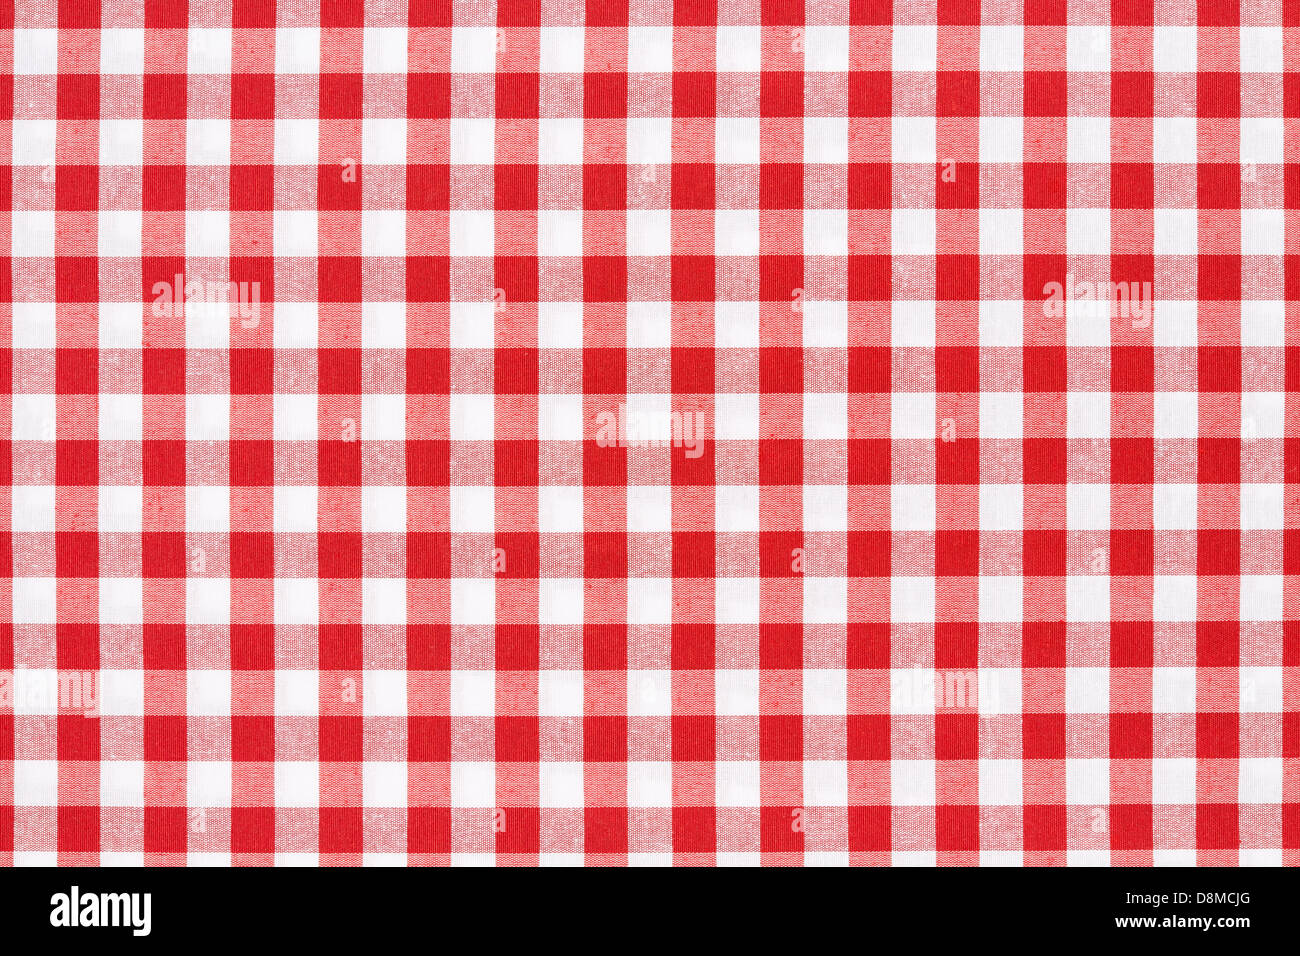 Red and white tablecloth texture background - Stock Image